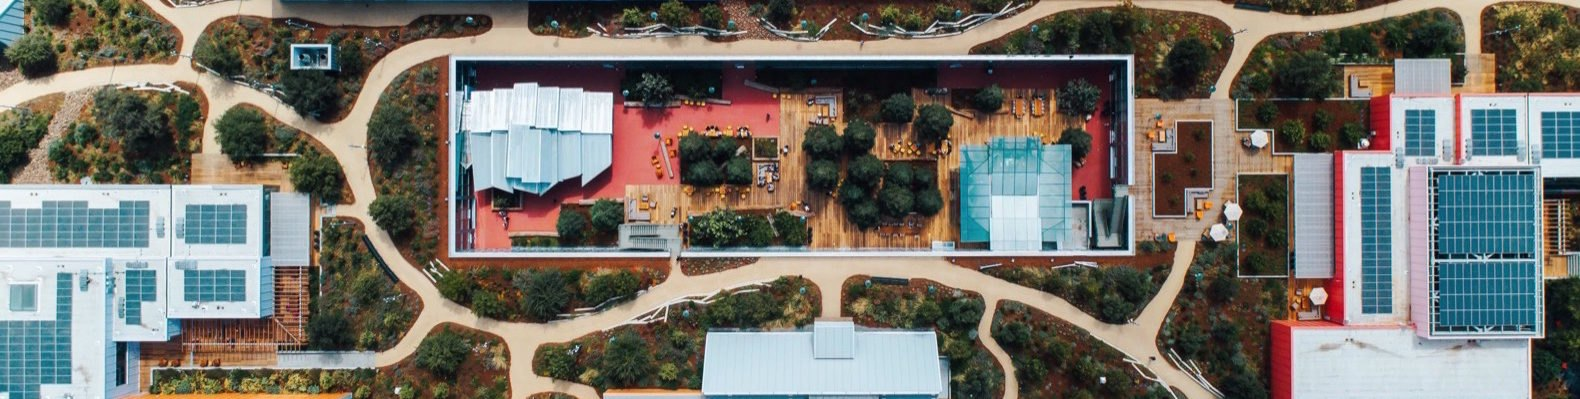 aerial view of rooftop park on a building